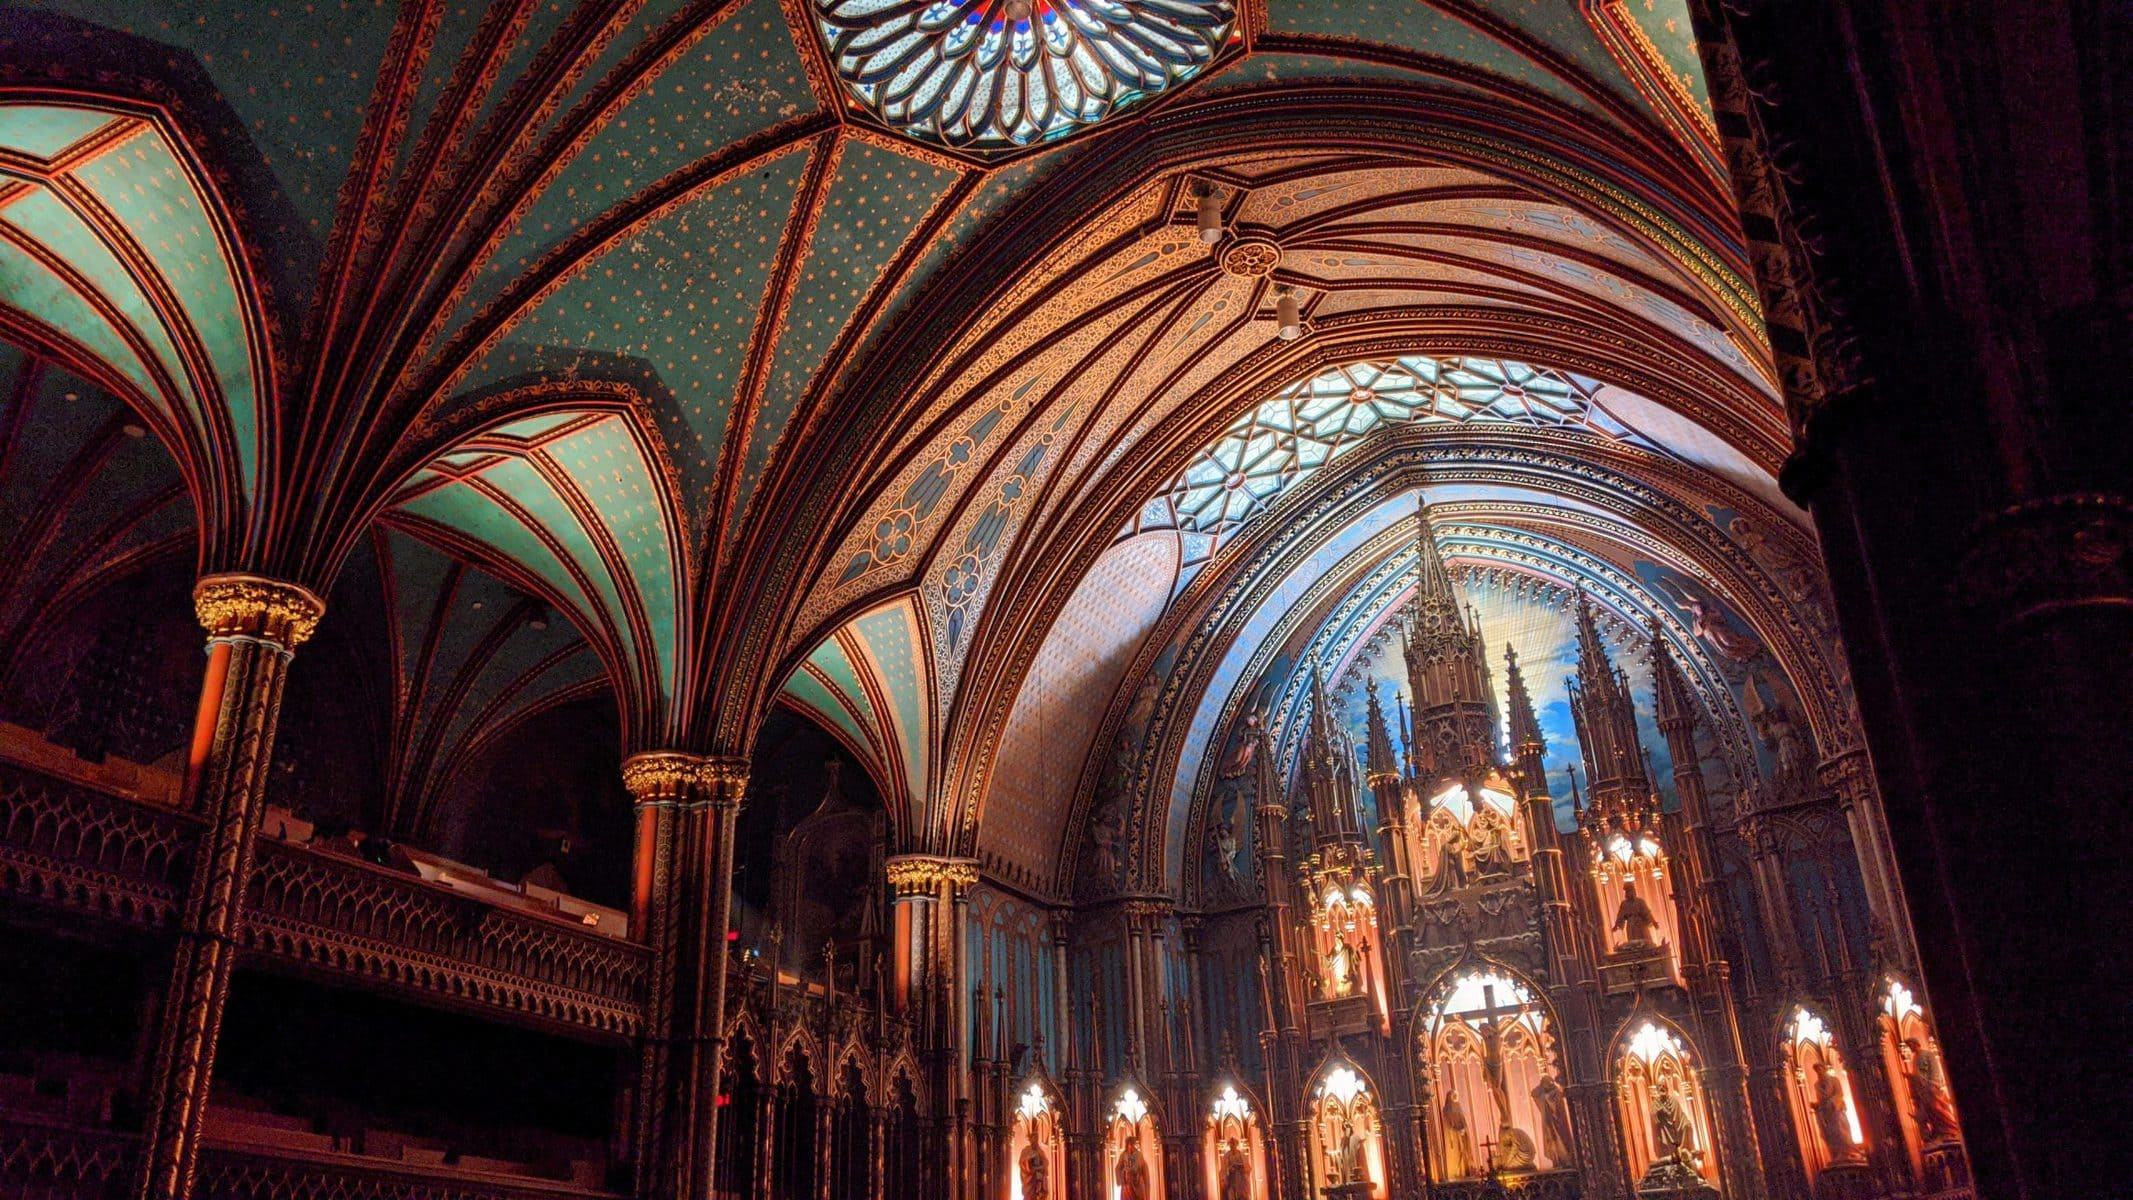 The ceiling of the Notre-Dame Basilica in Montreal at night during the Aura light show